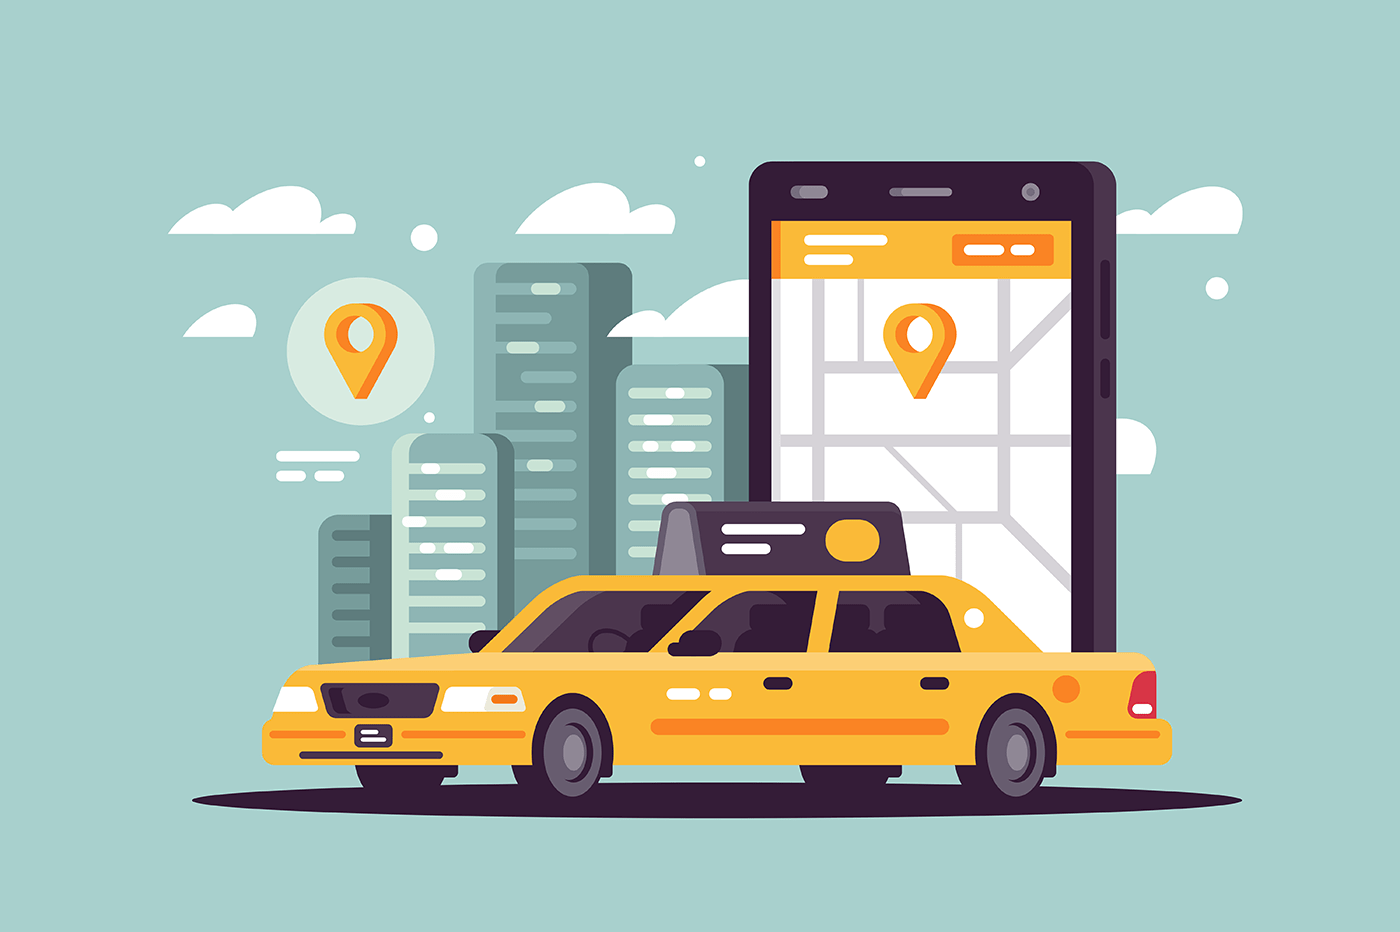 Modern taxi call using smartphone and online application.